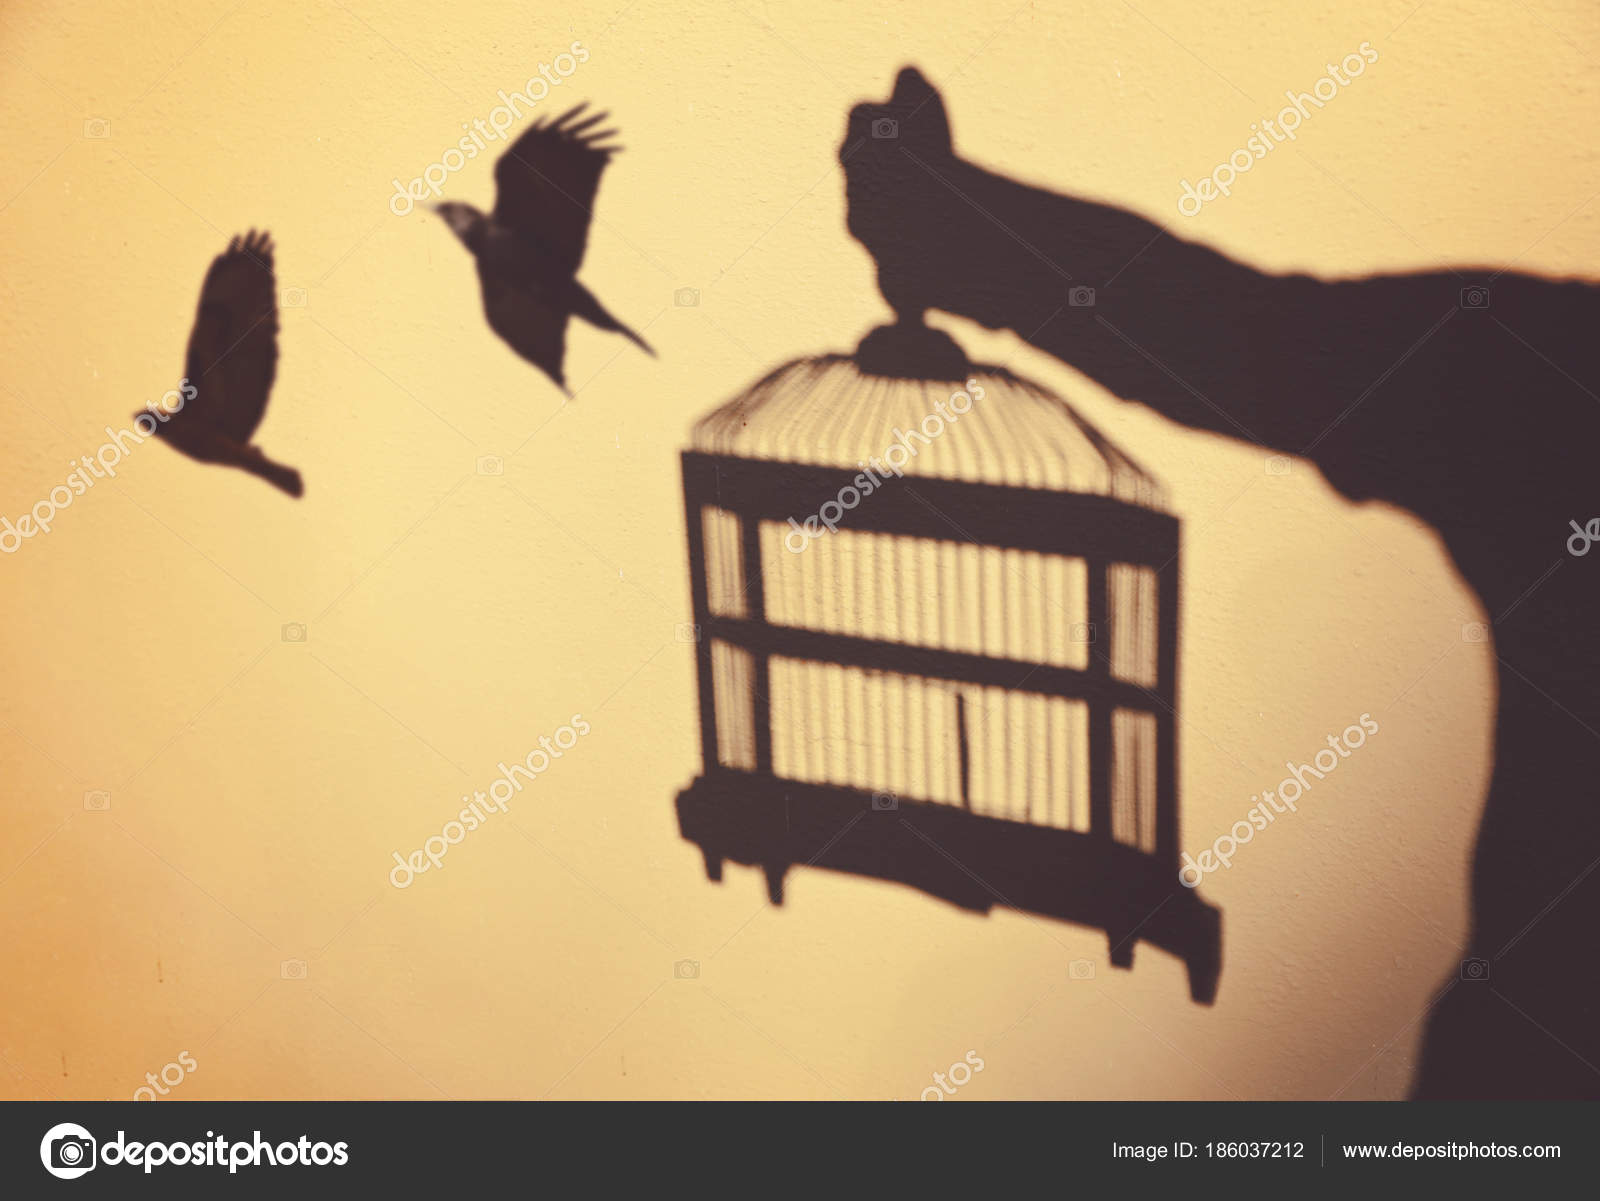 surreal concept being set free with birds flying out of a cage held ...